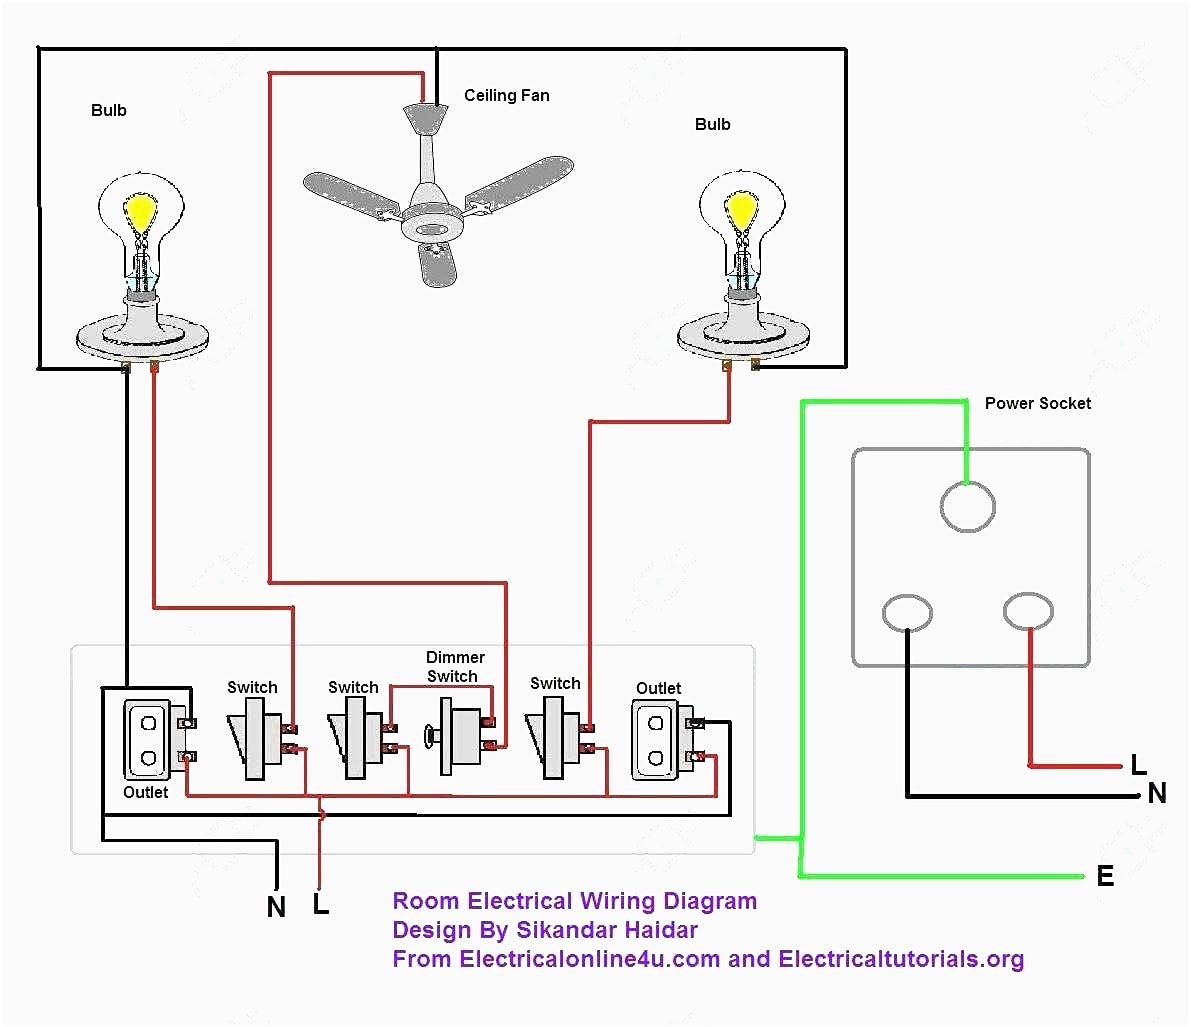 69FECD House Wiring Diagram In The Philippines | Wiring LibraryWiring Library